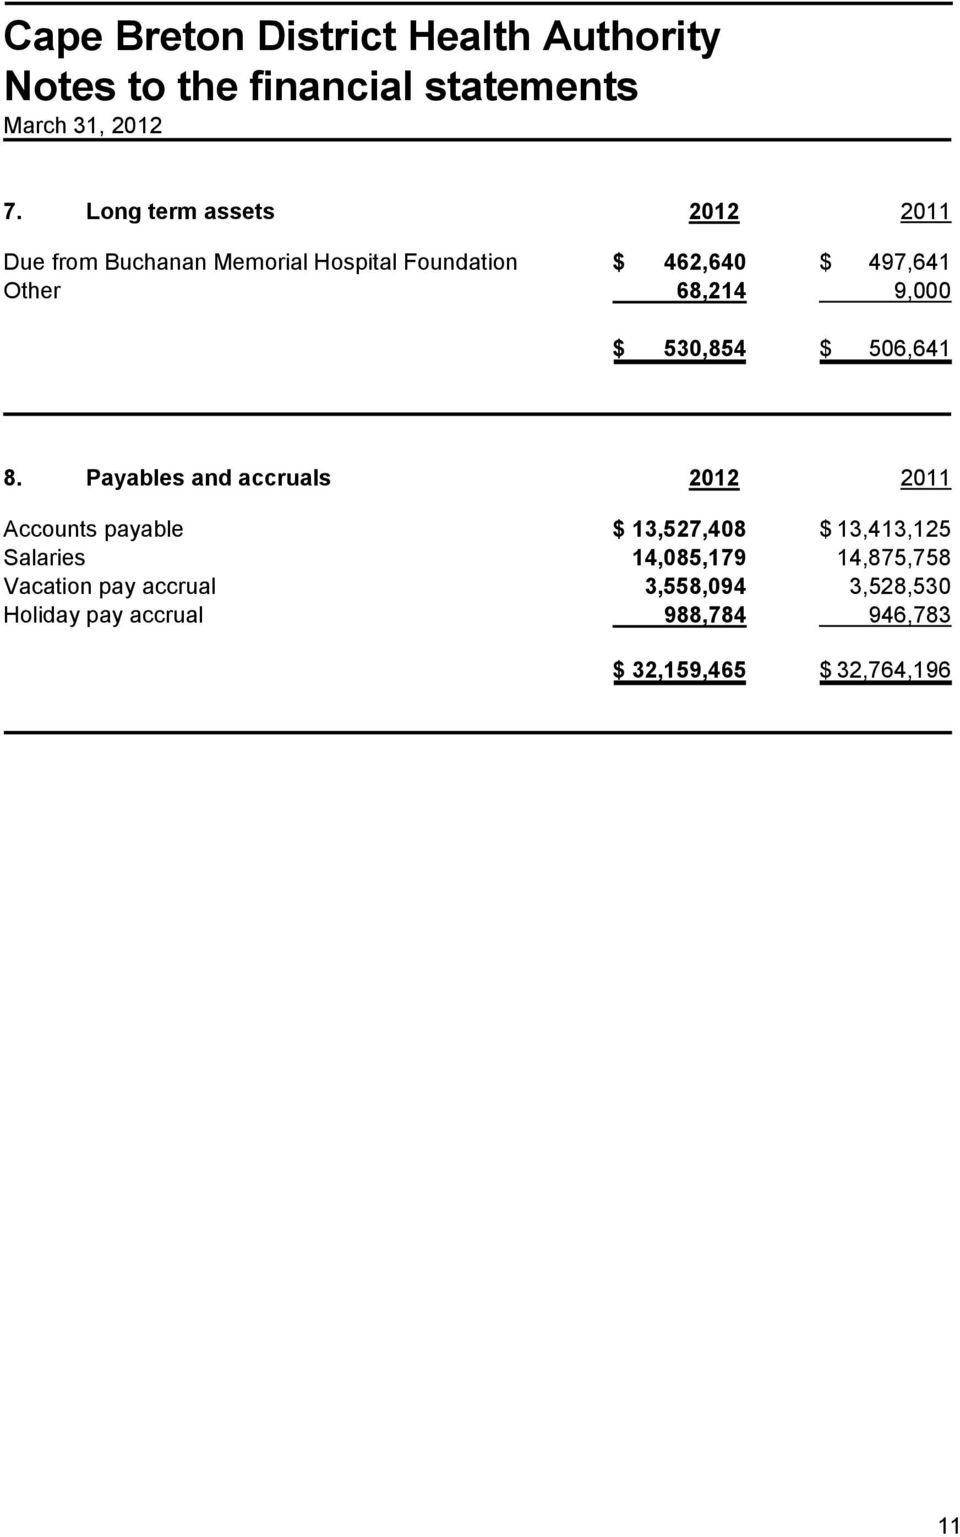 Payables and accruals 2012 2011 Accounts payable $ 13,527,408 $ 13,413,125 Salaries